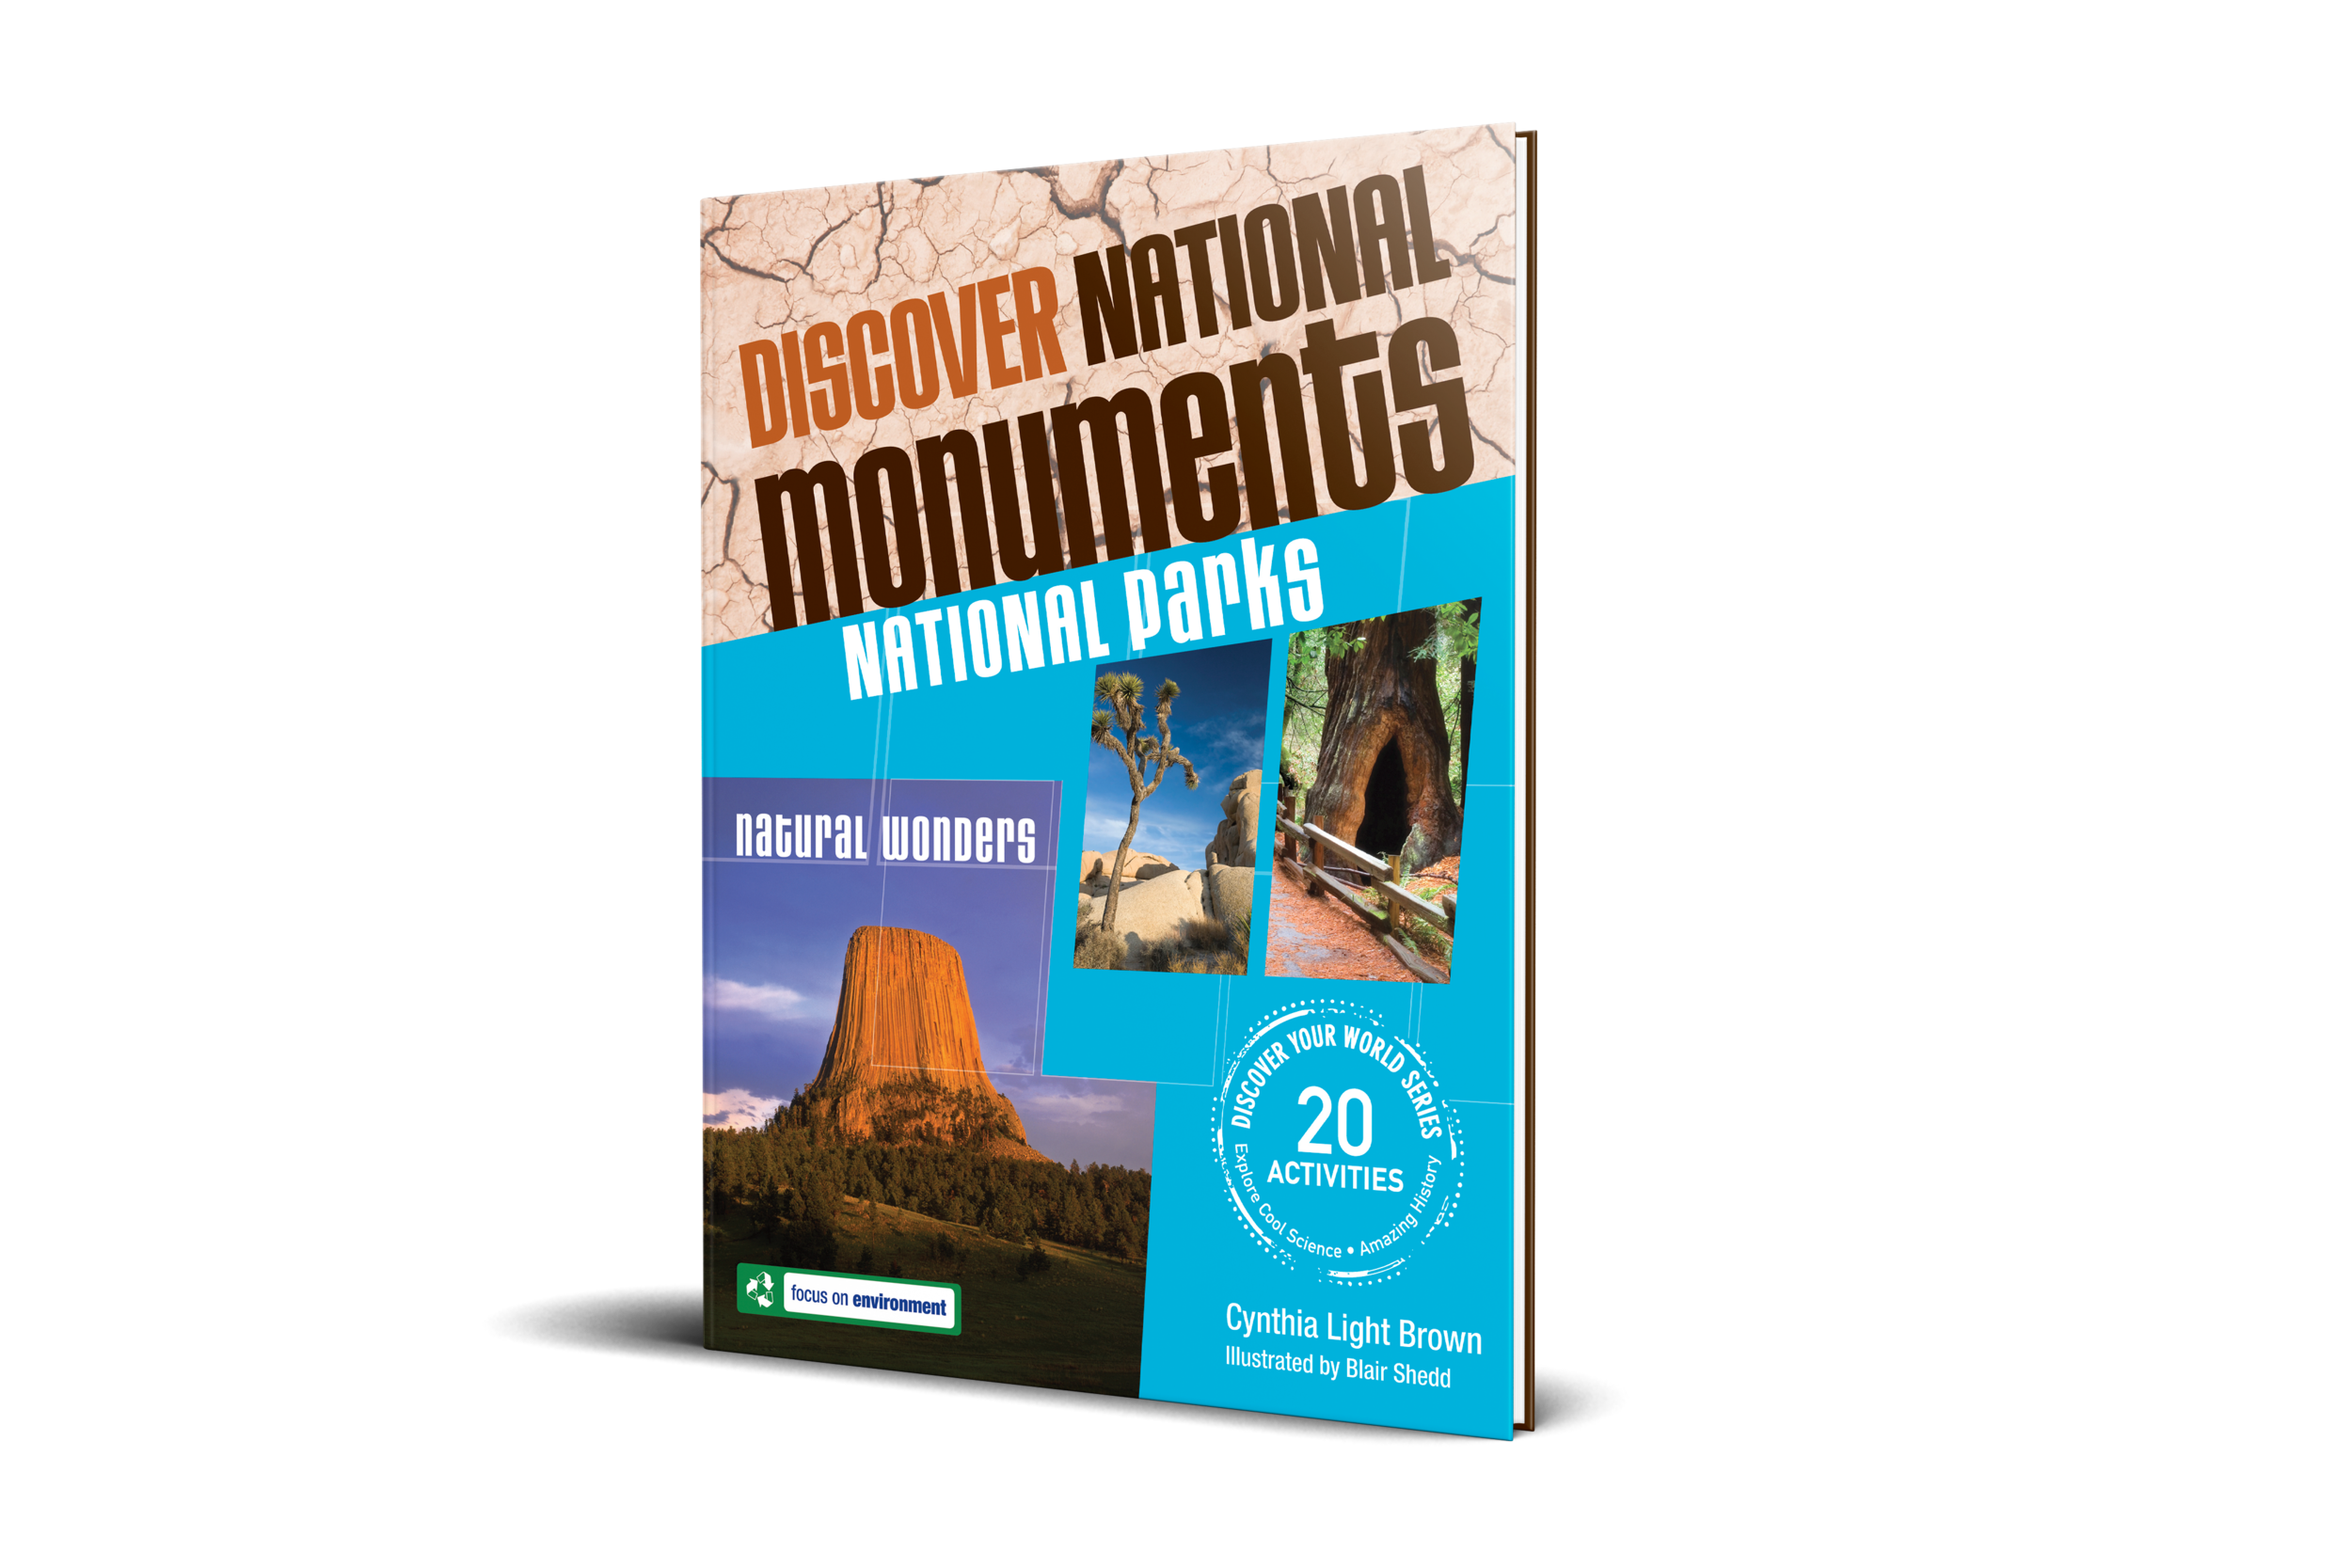 DiscoverNationalMonuments_3D.png